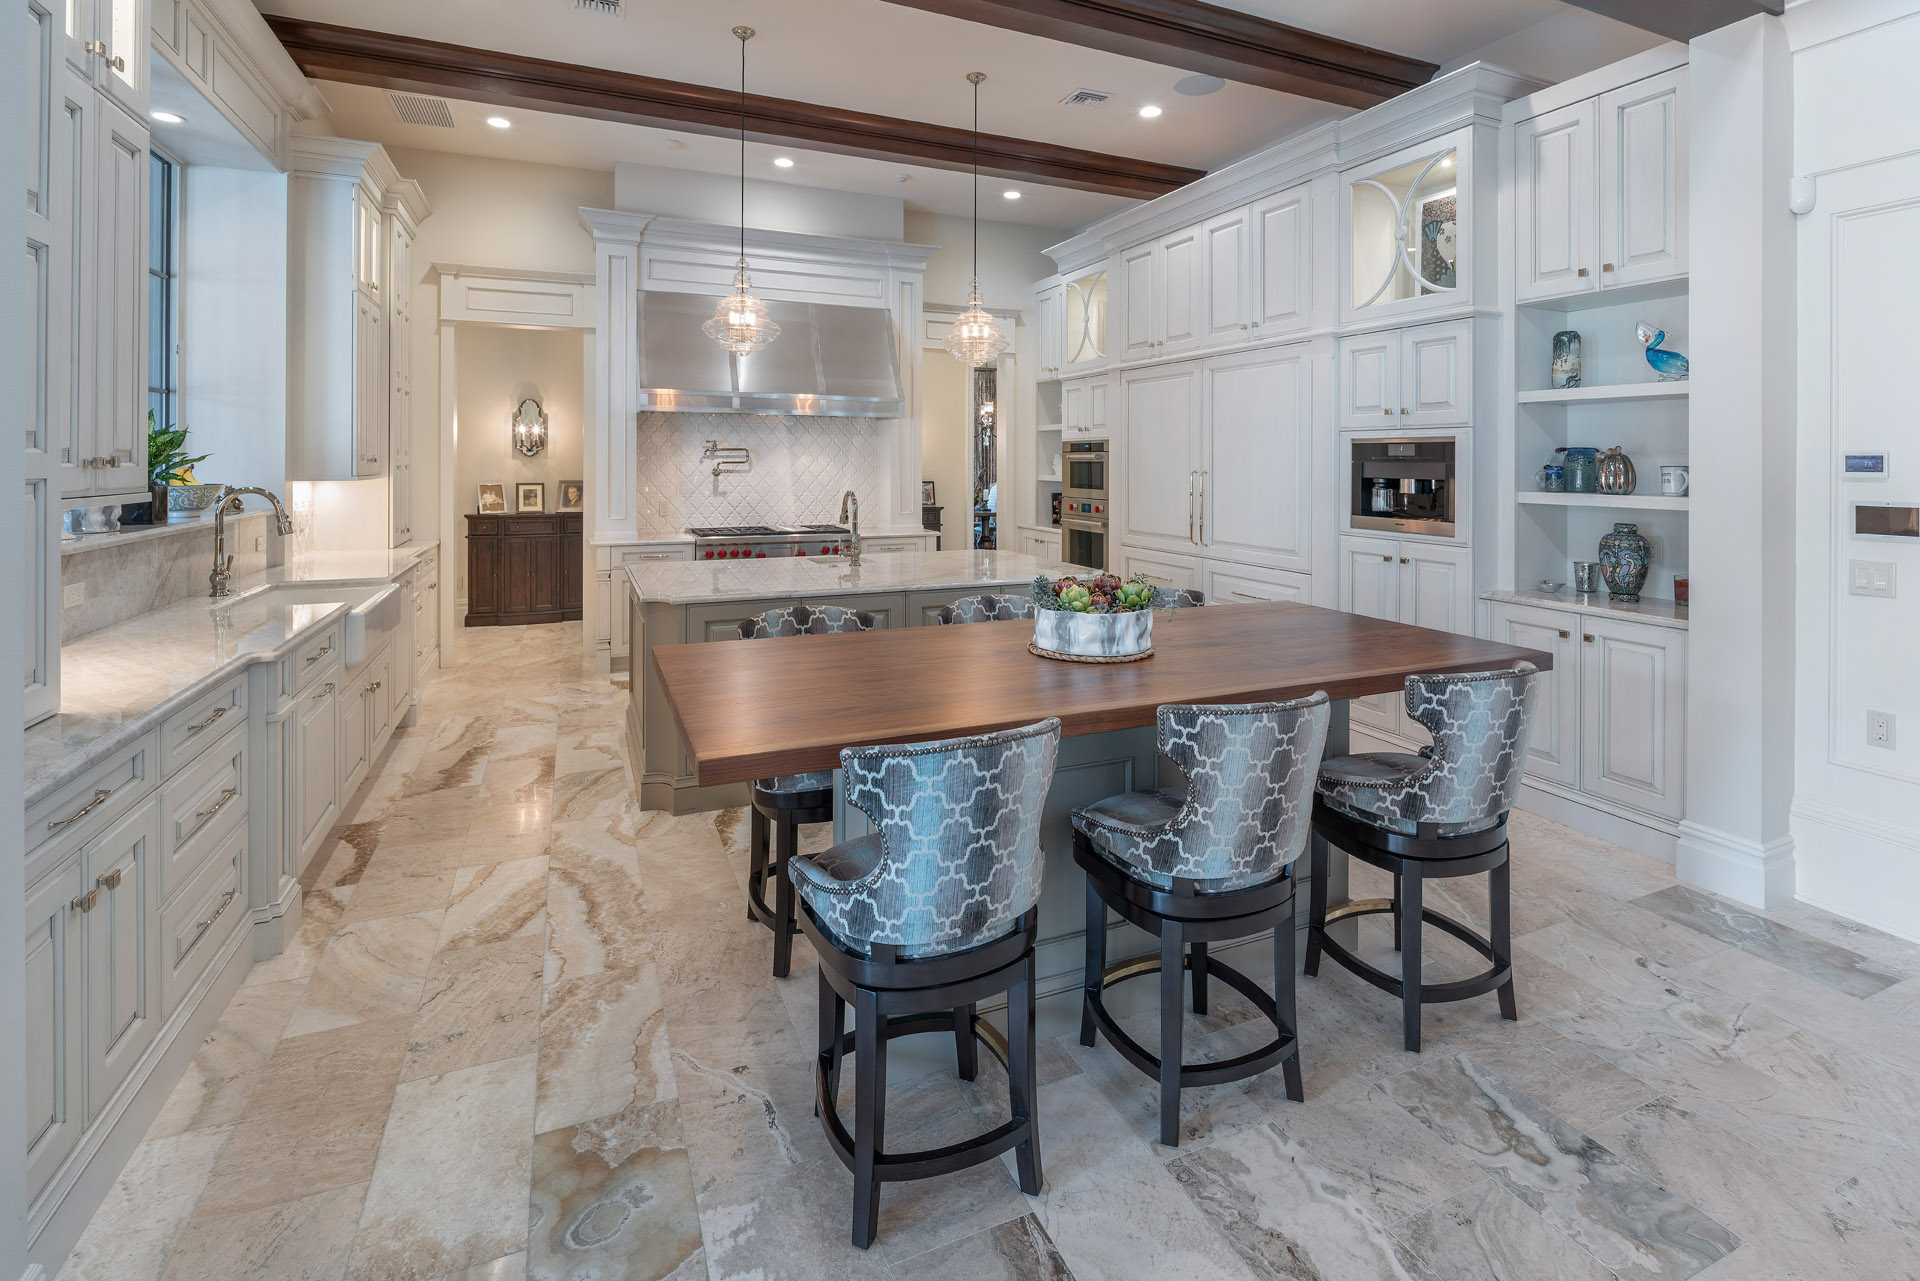 custom kitchen design built by central florida builder Einheit Homes